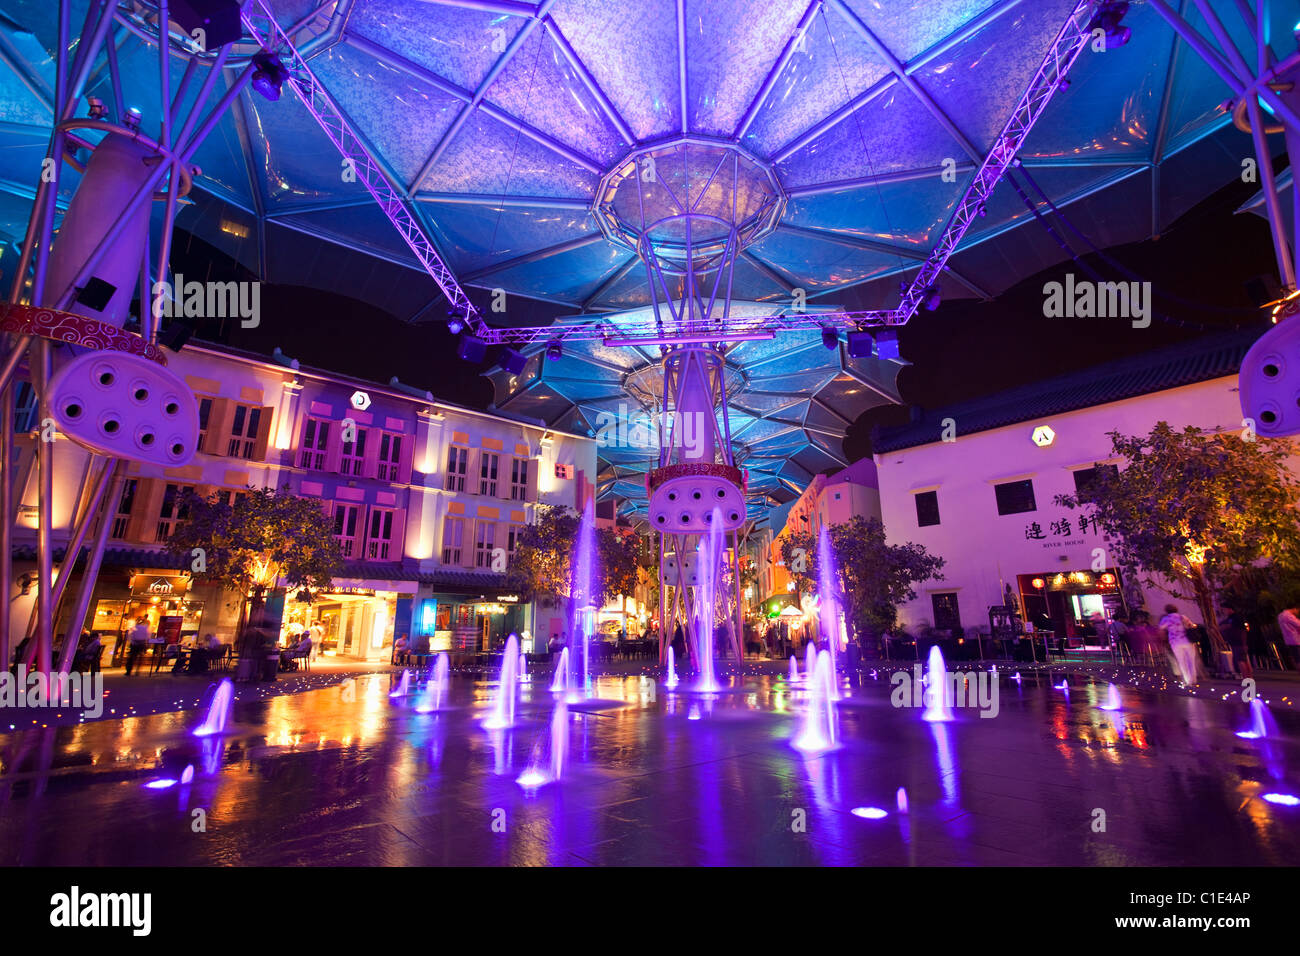 Colourful architecture at the bar and restaurant district of Clarke Quay, Singapore - Stock Image